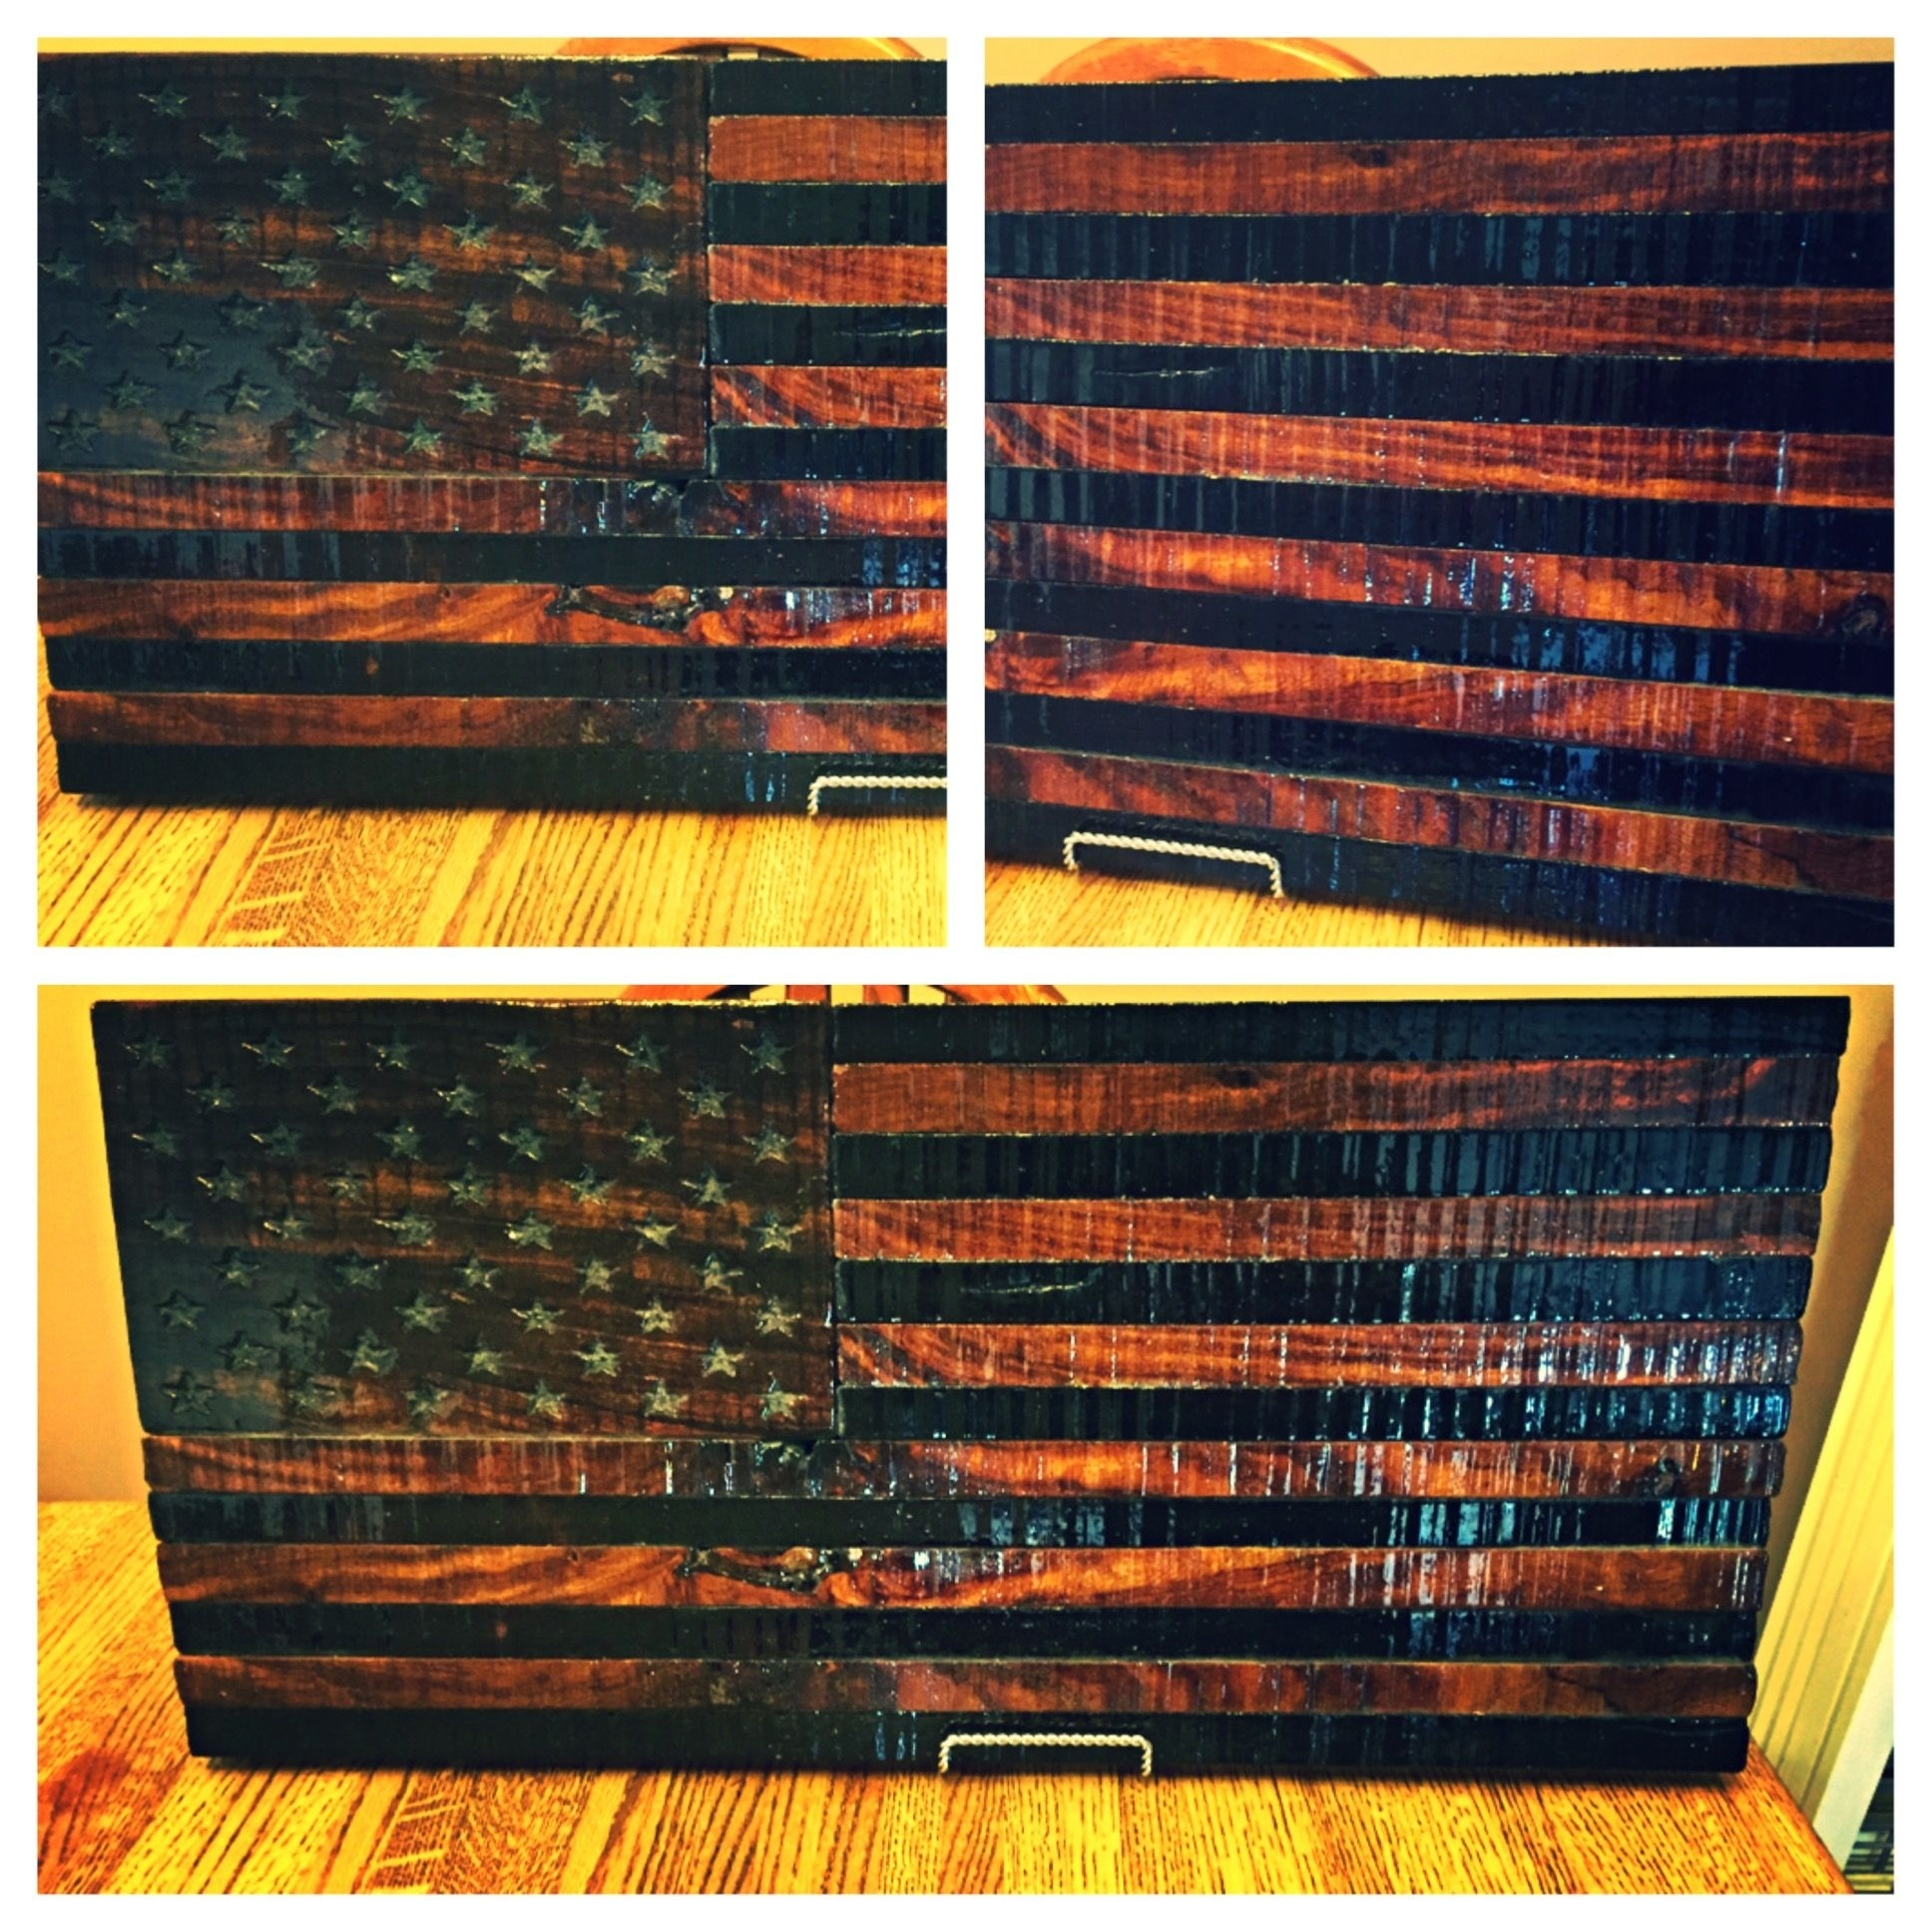 Custom Rustic Wooden American Flagtorched Metal Works Regarding Most Up To Date Rustic American Flag Wall Art (Gallery 19 of 20)